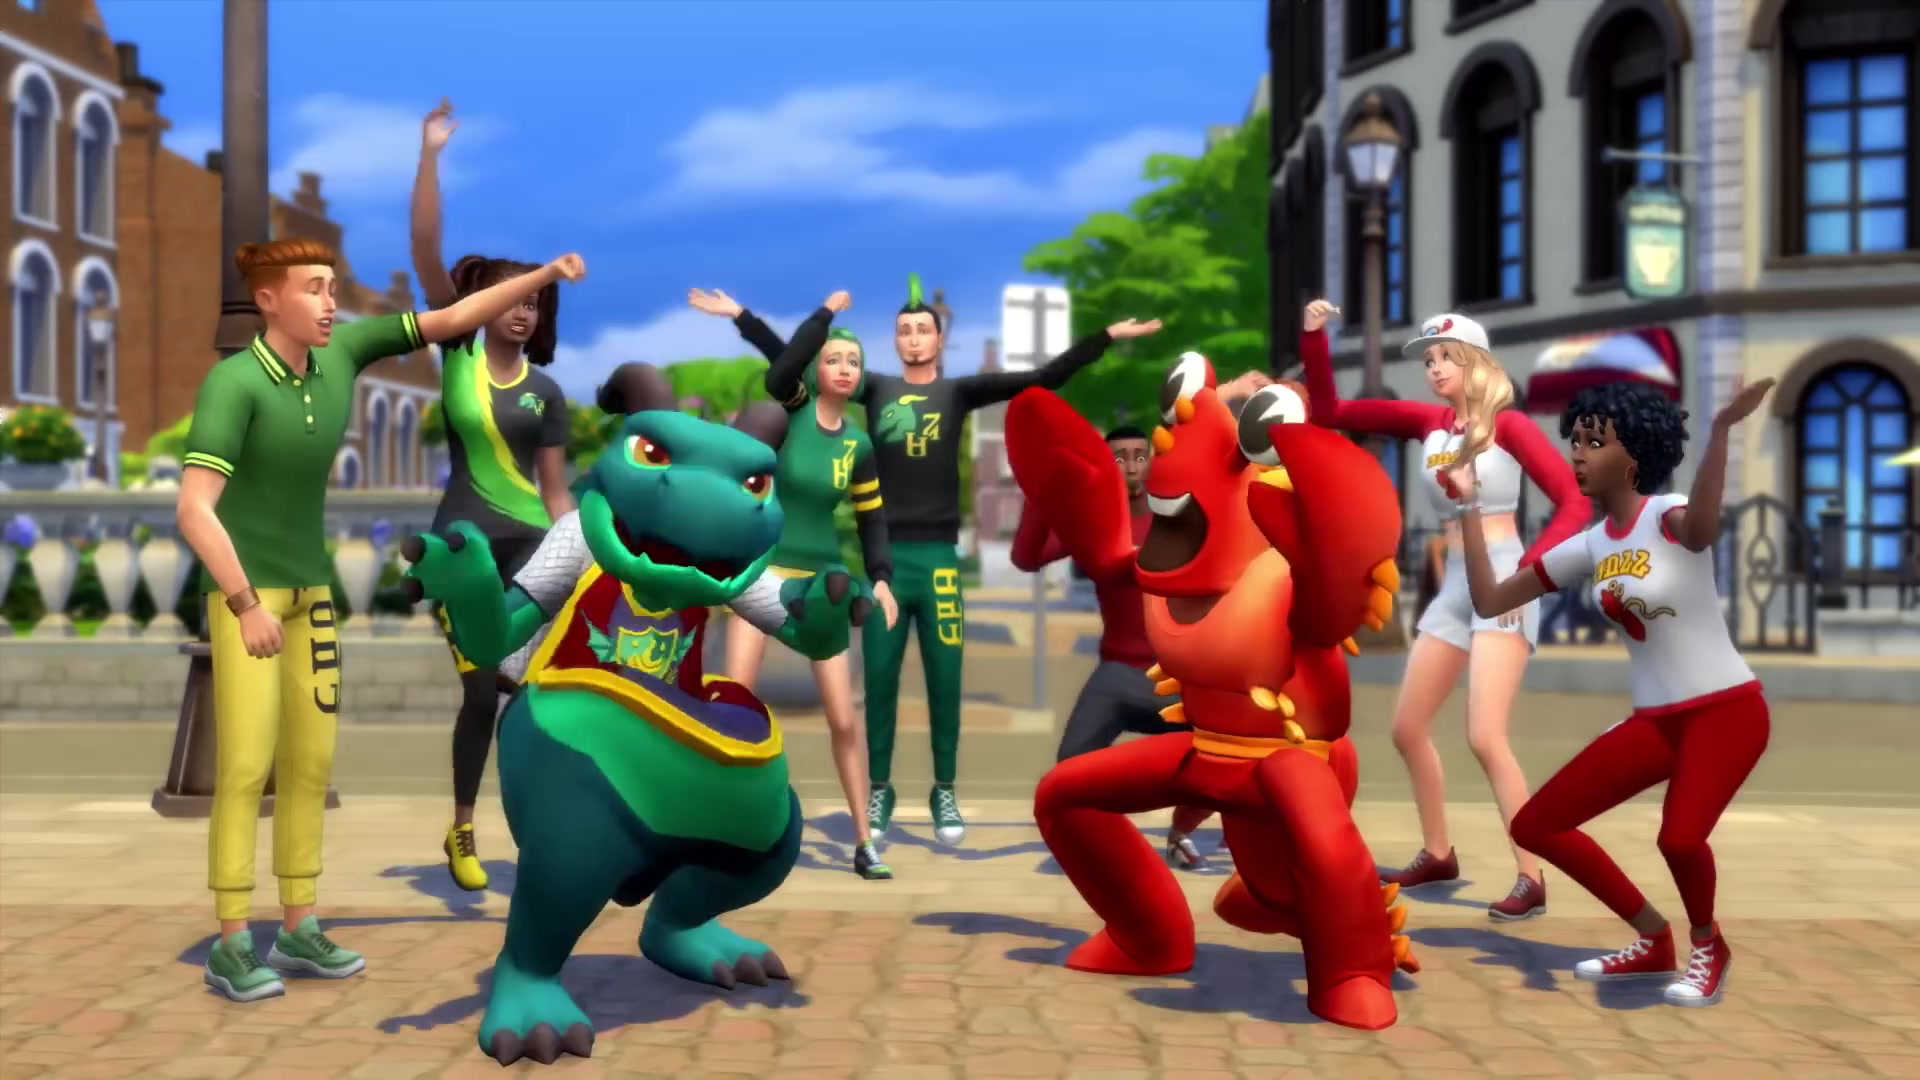 The Sims 4 Discover University - a shot of the school mascots and students